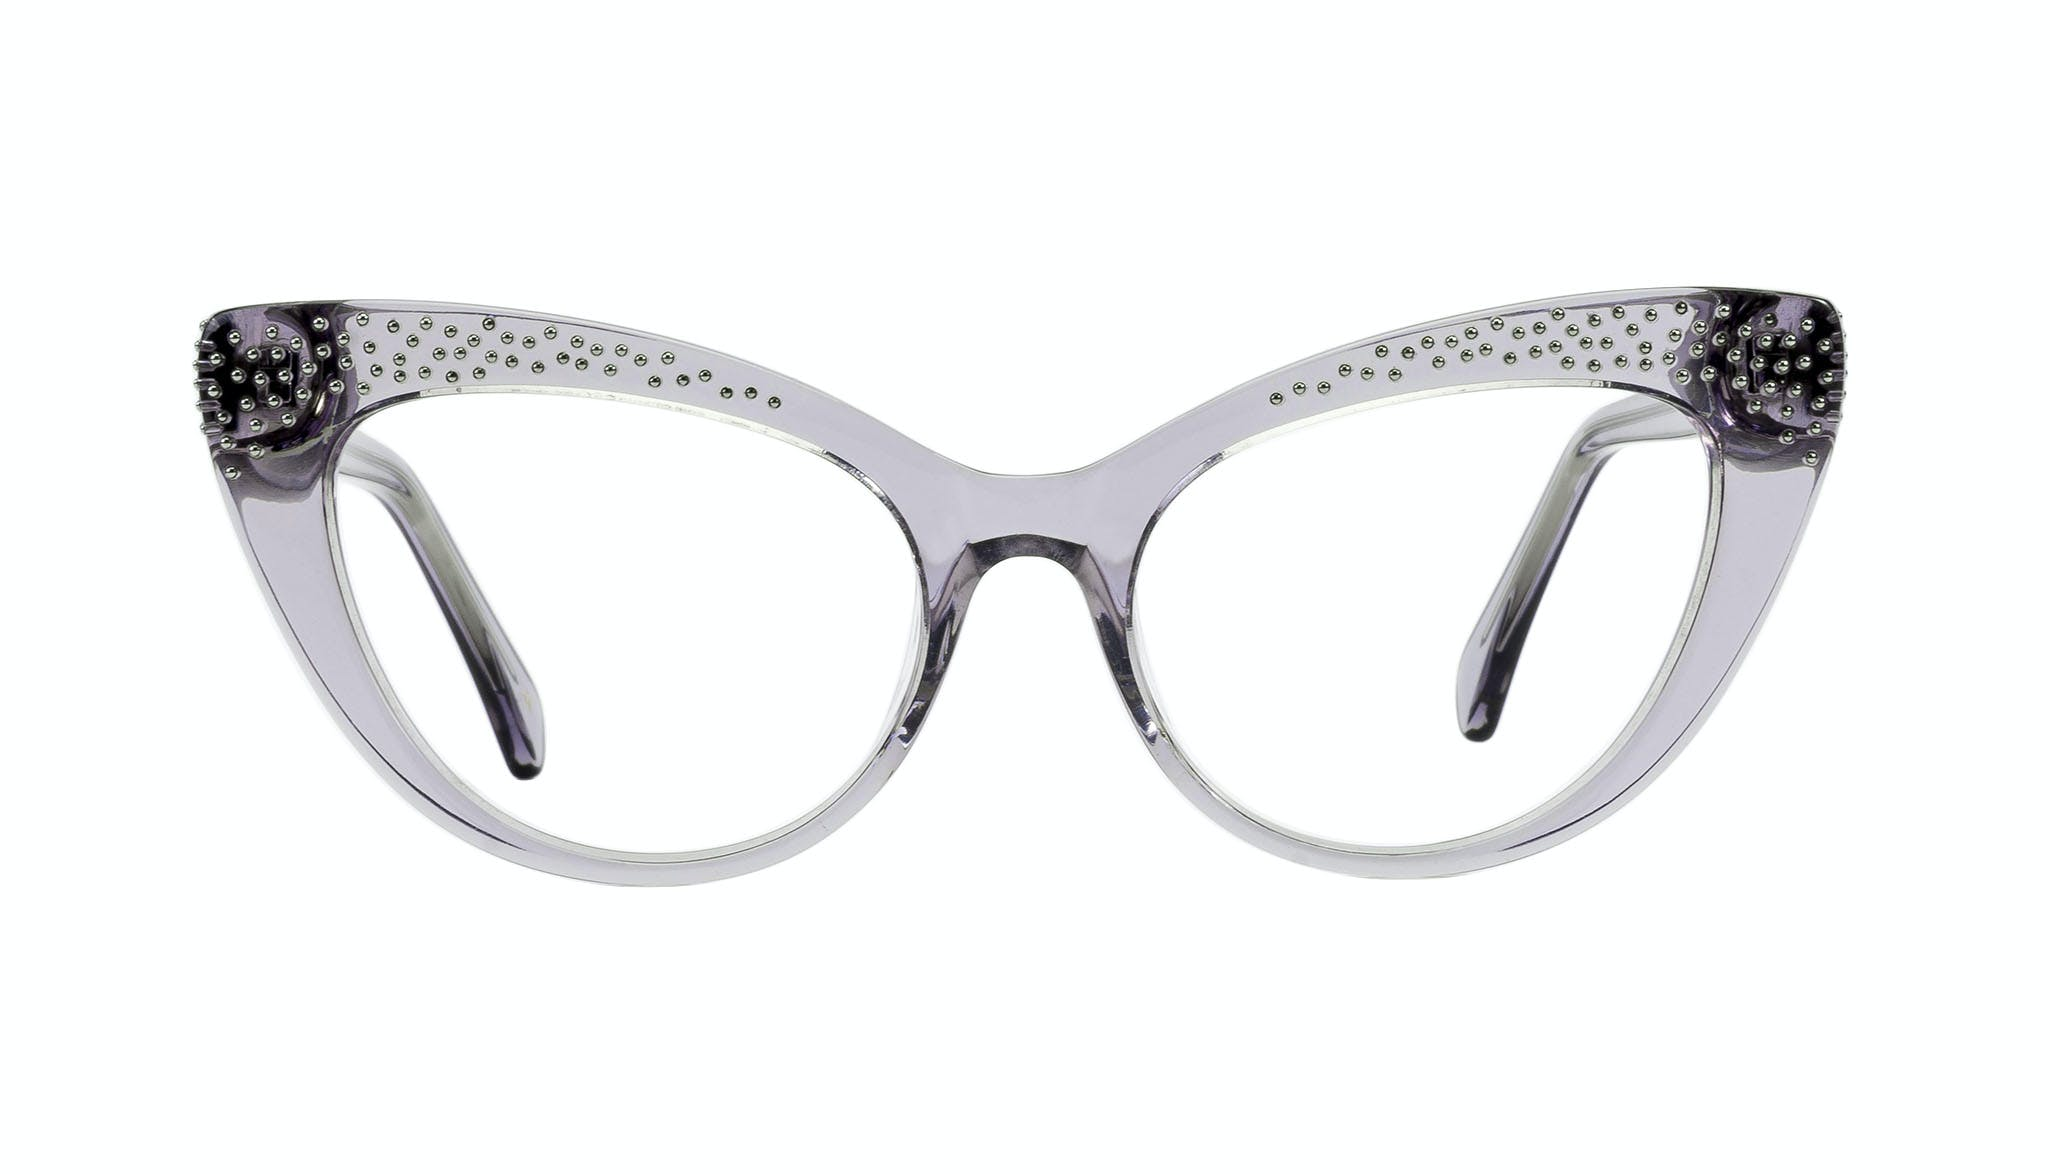 Affordable Fashion Glasses Cat Eye Daring Cateye Eyeglasses Women Keiko Moe May Front